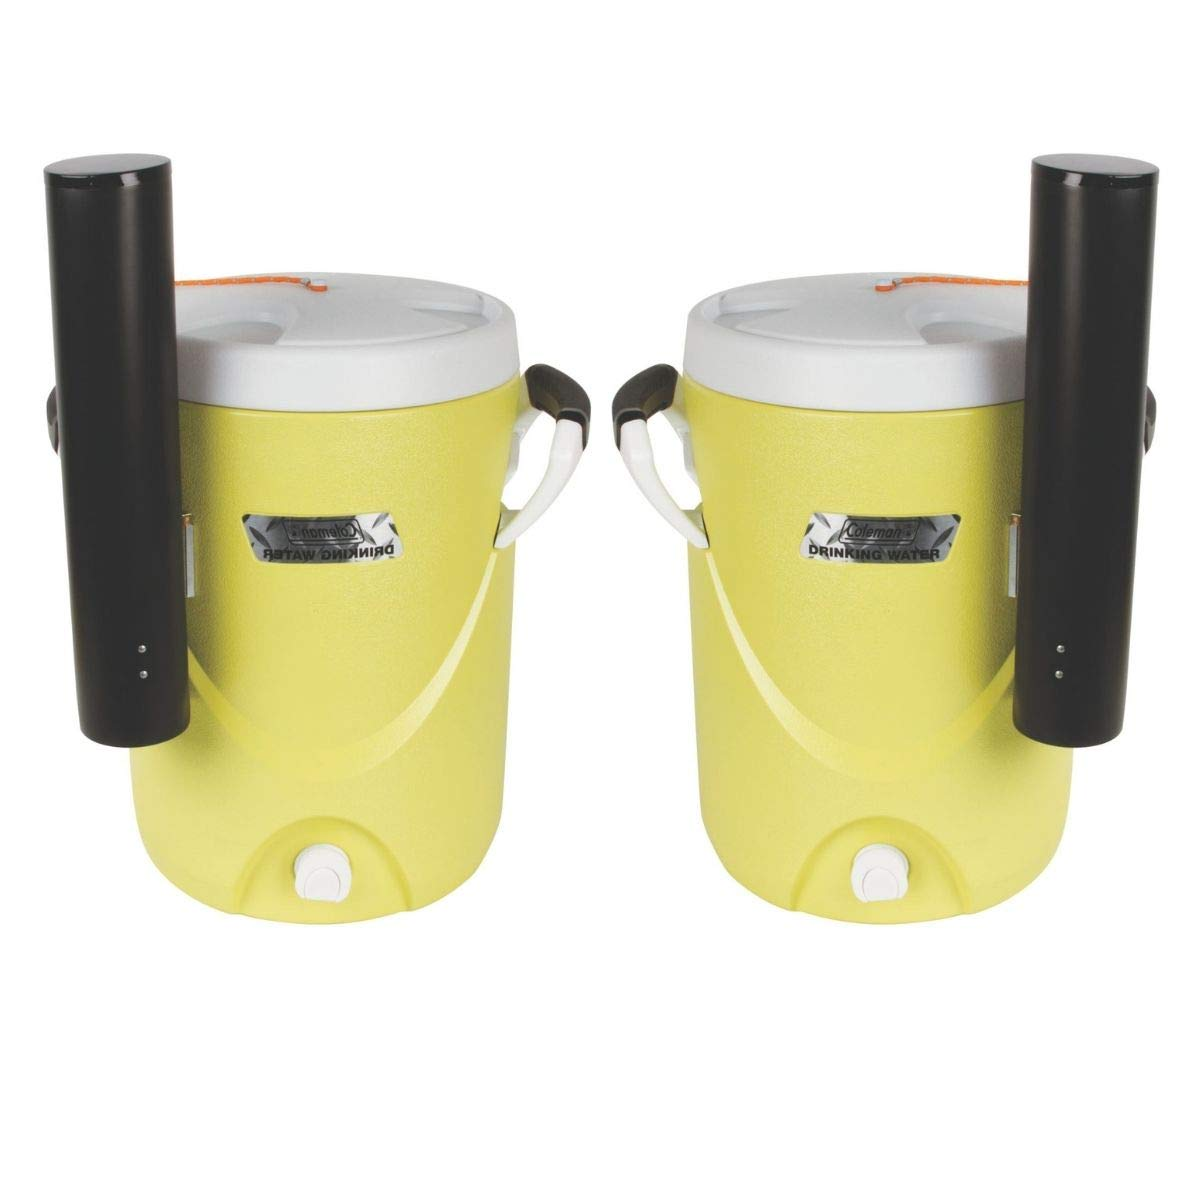 Coleman 3000004064 Beverage Cooler,5 gal,Plastic G4326485 (Yellow/Set of 2)